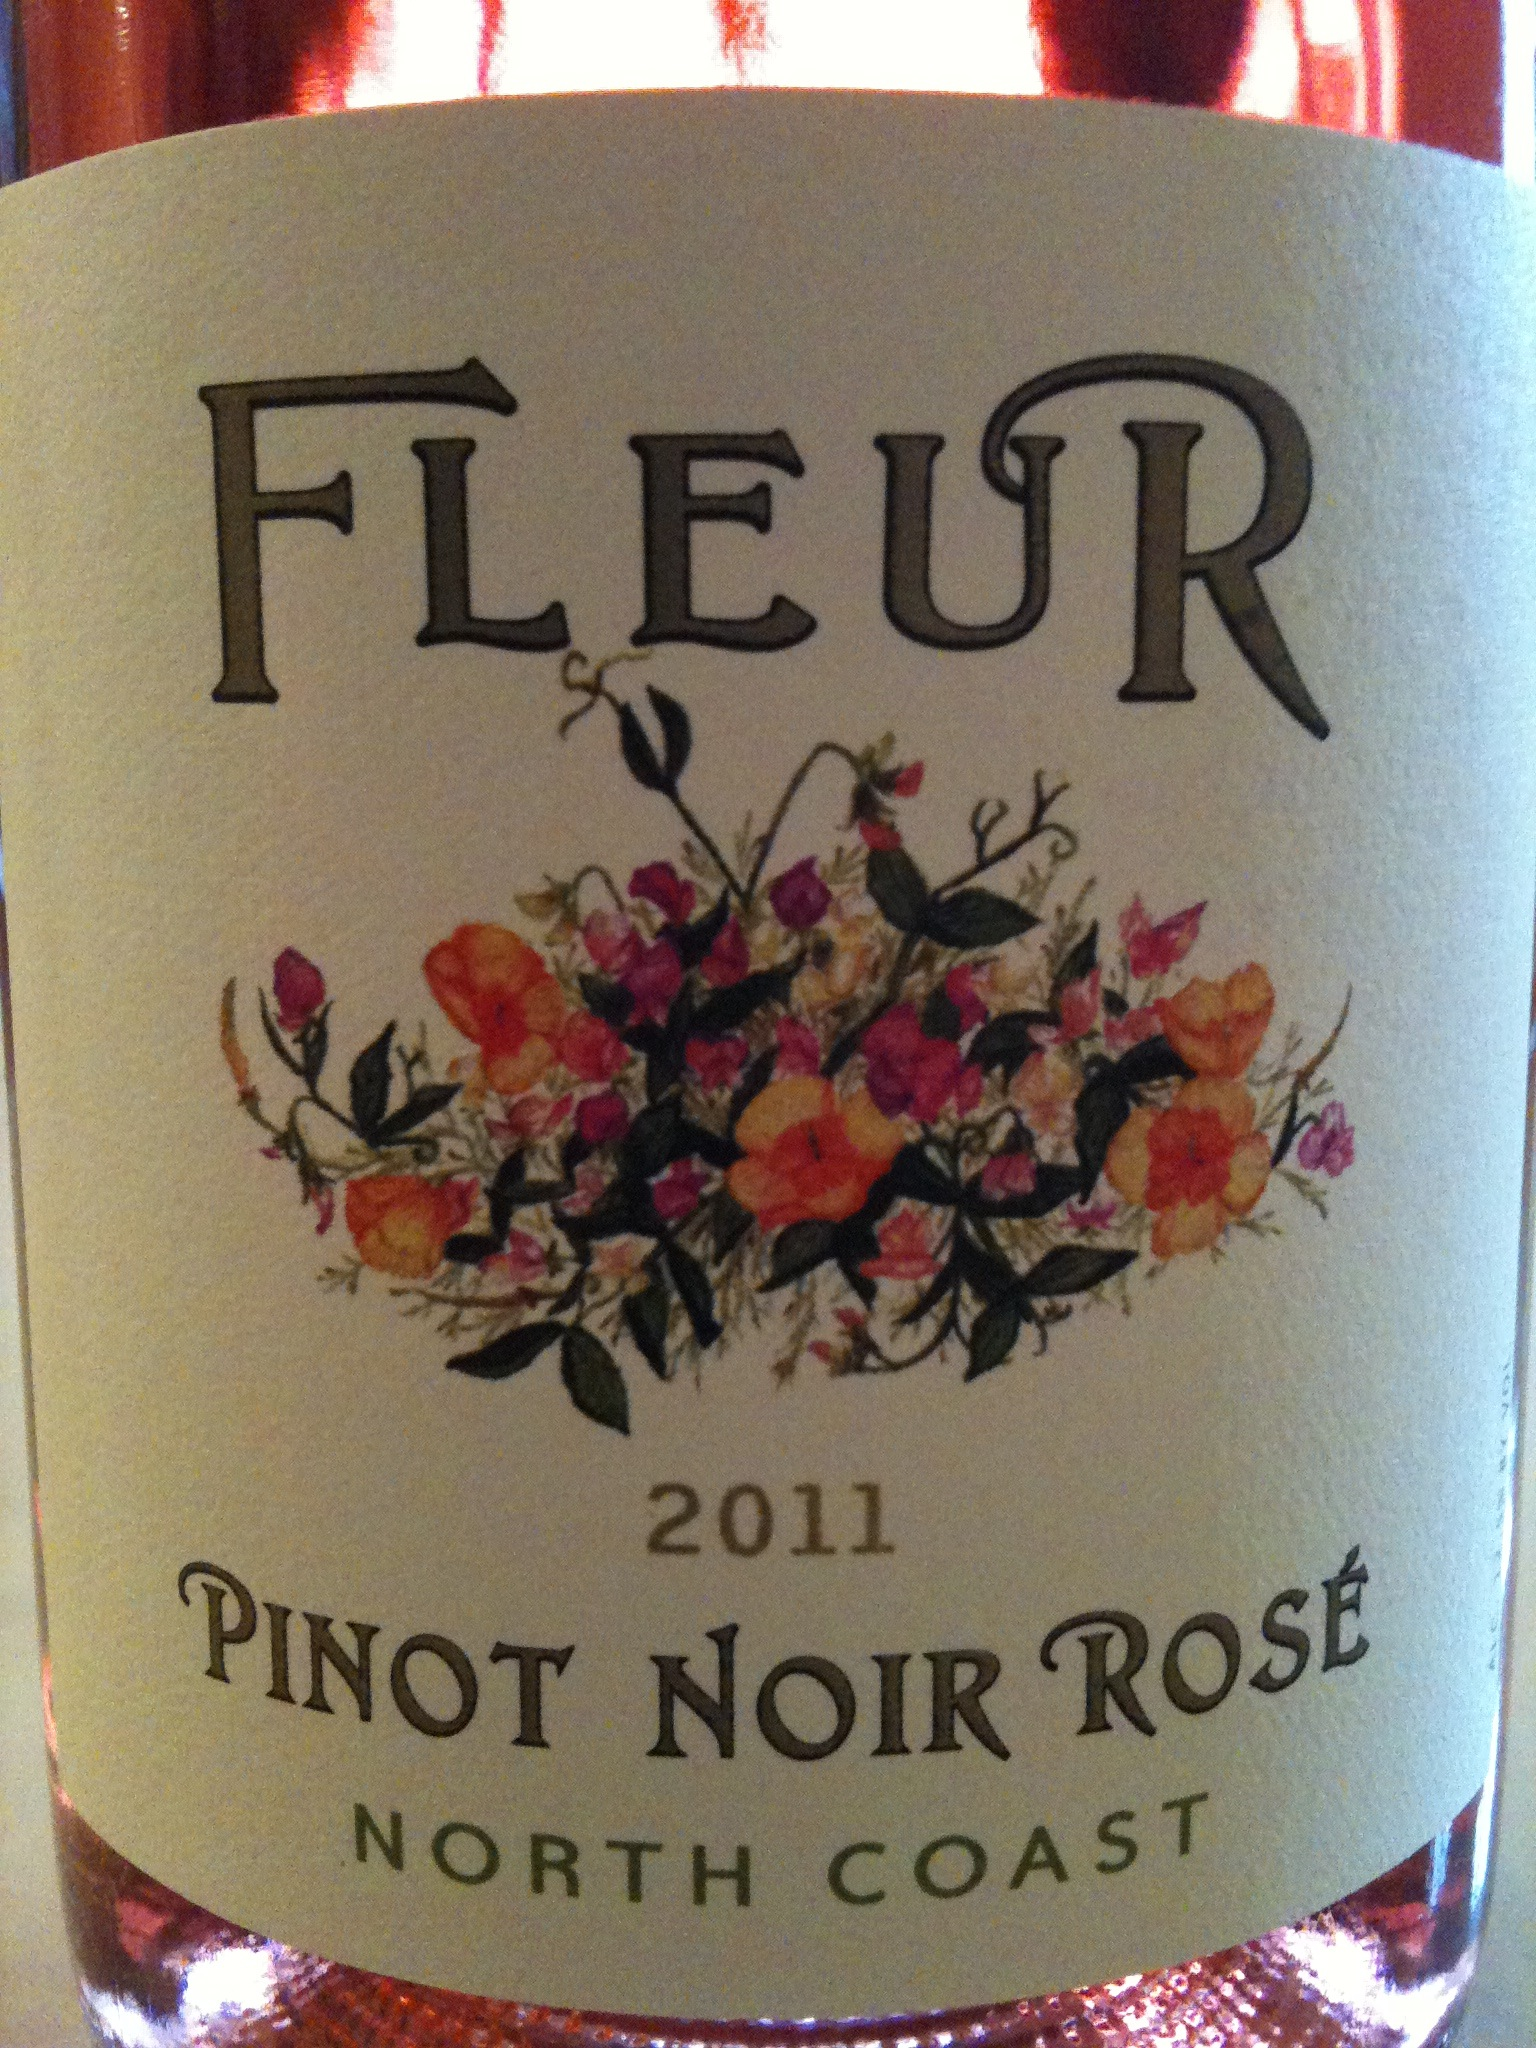 Fleur Pinot Noir Rosé North Coast 2011 - Wine Review